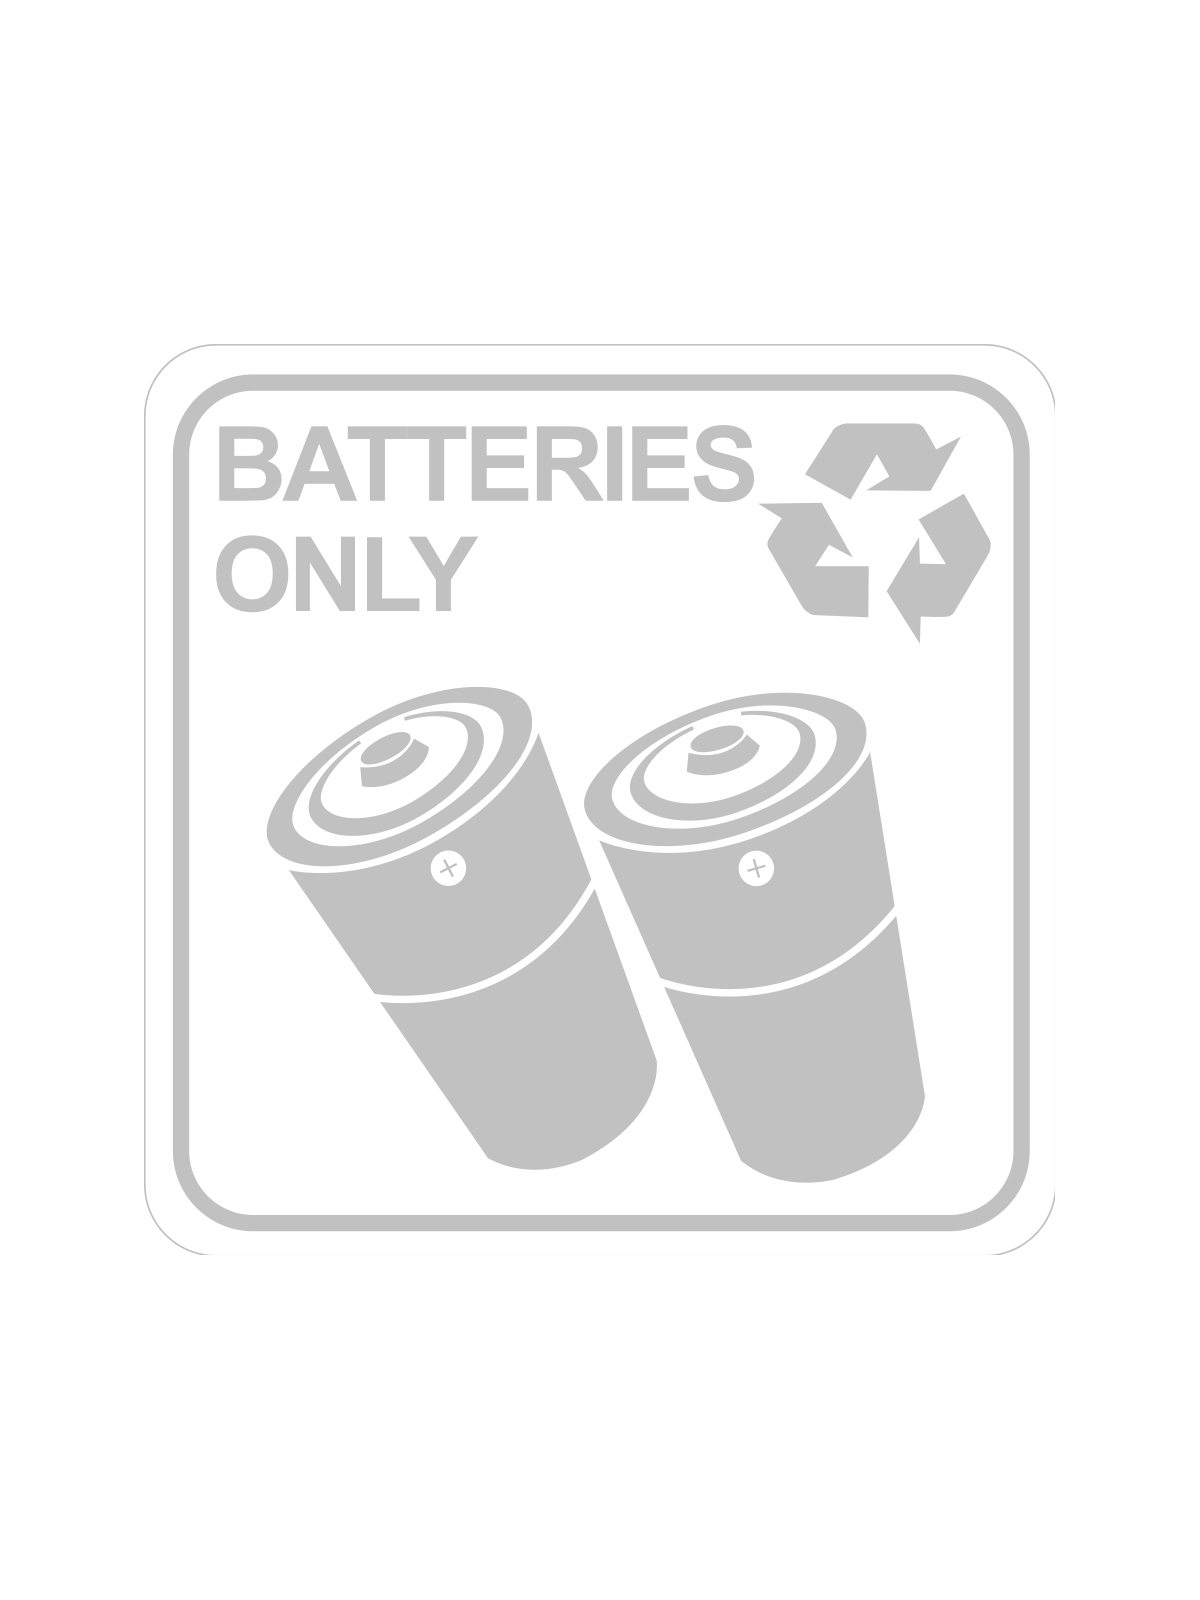 SQUARE LABEL BATTERIES ONLY